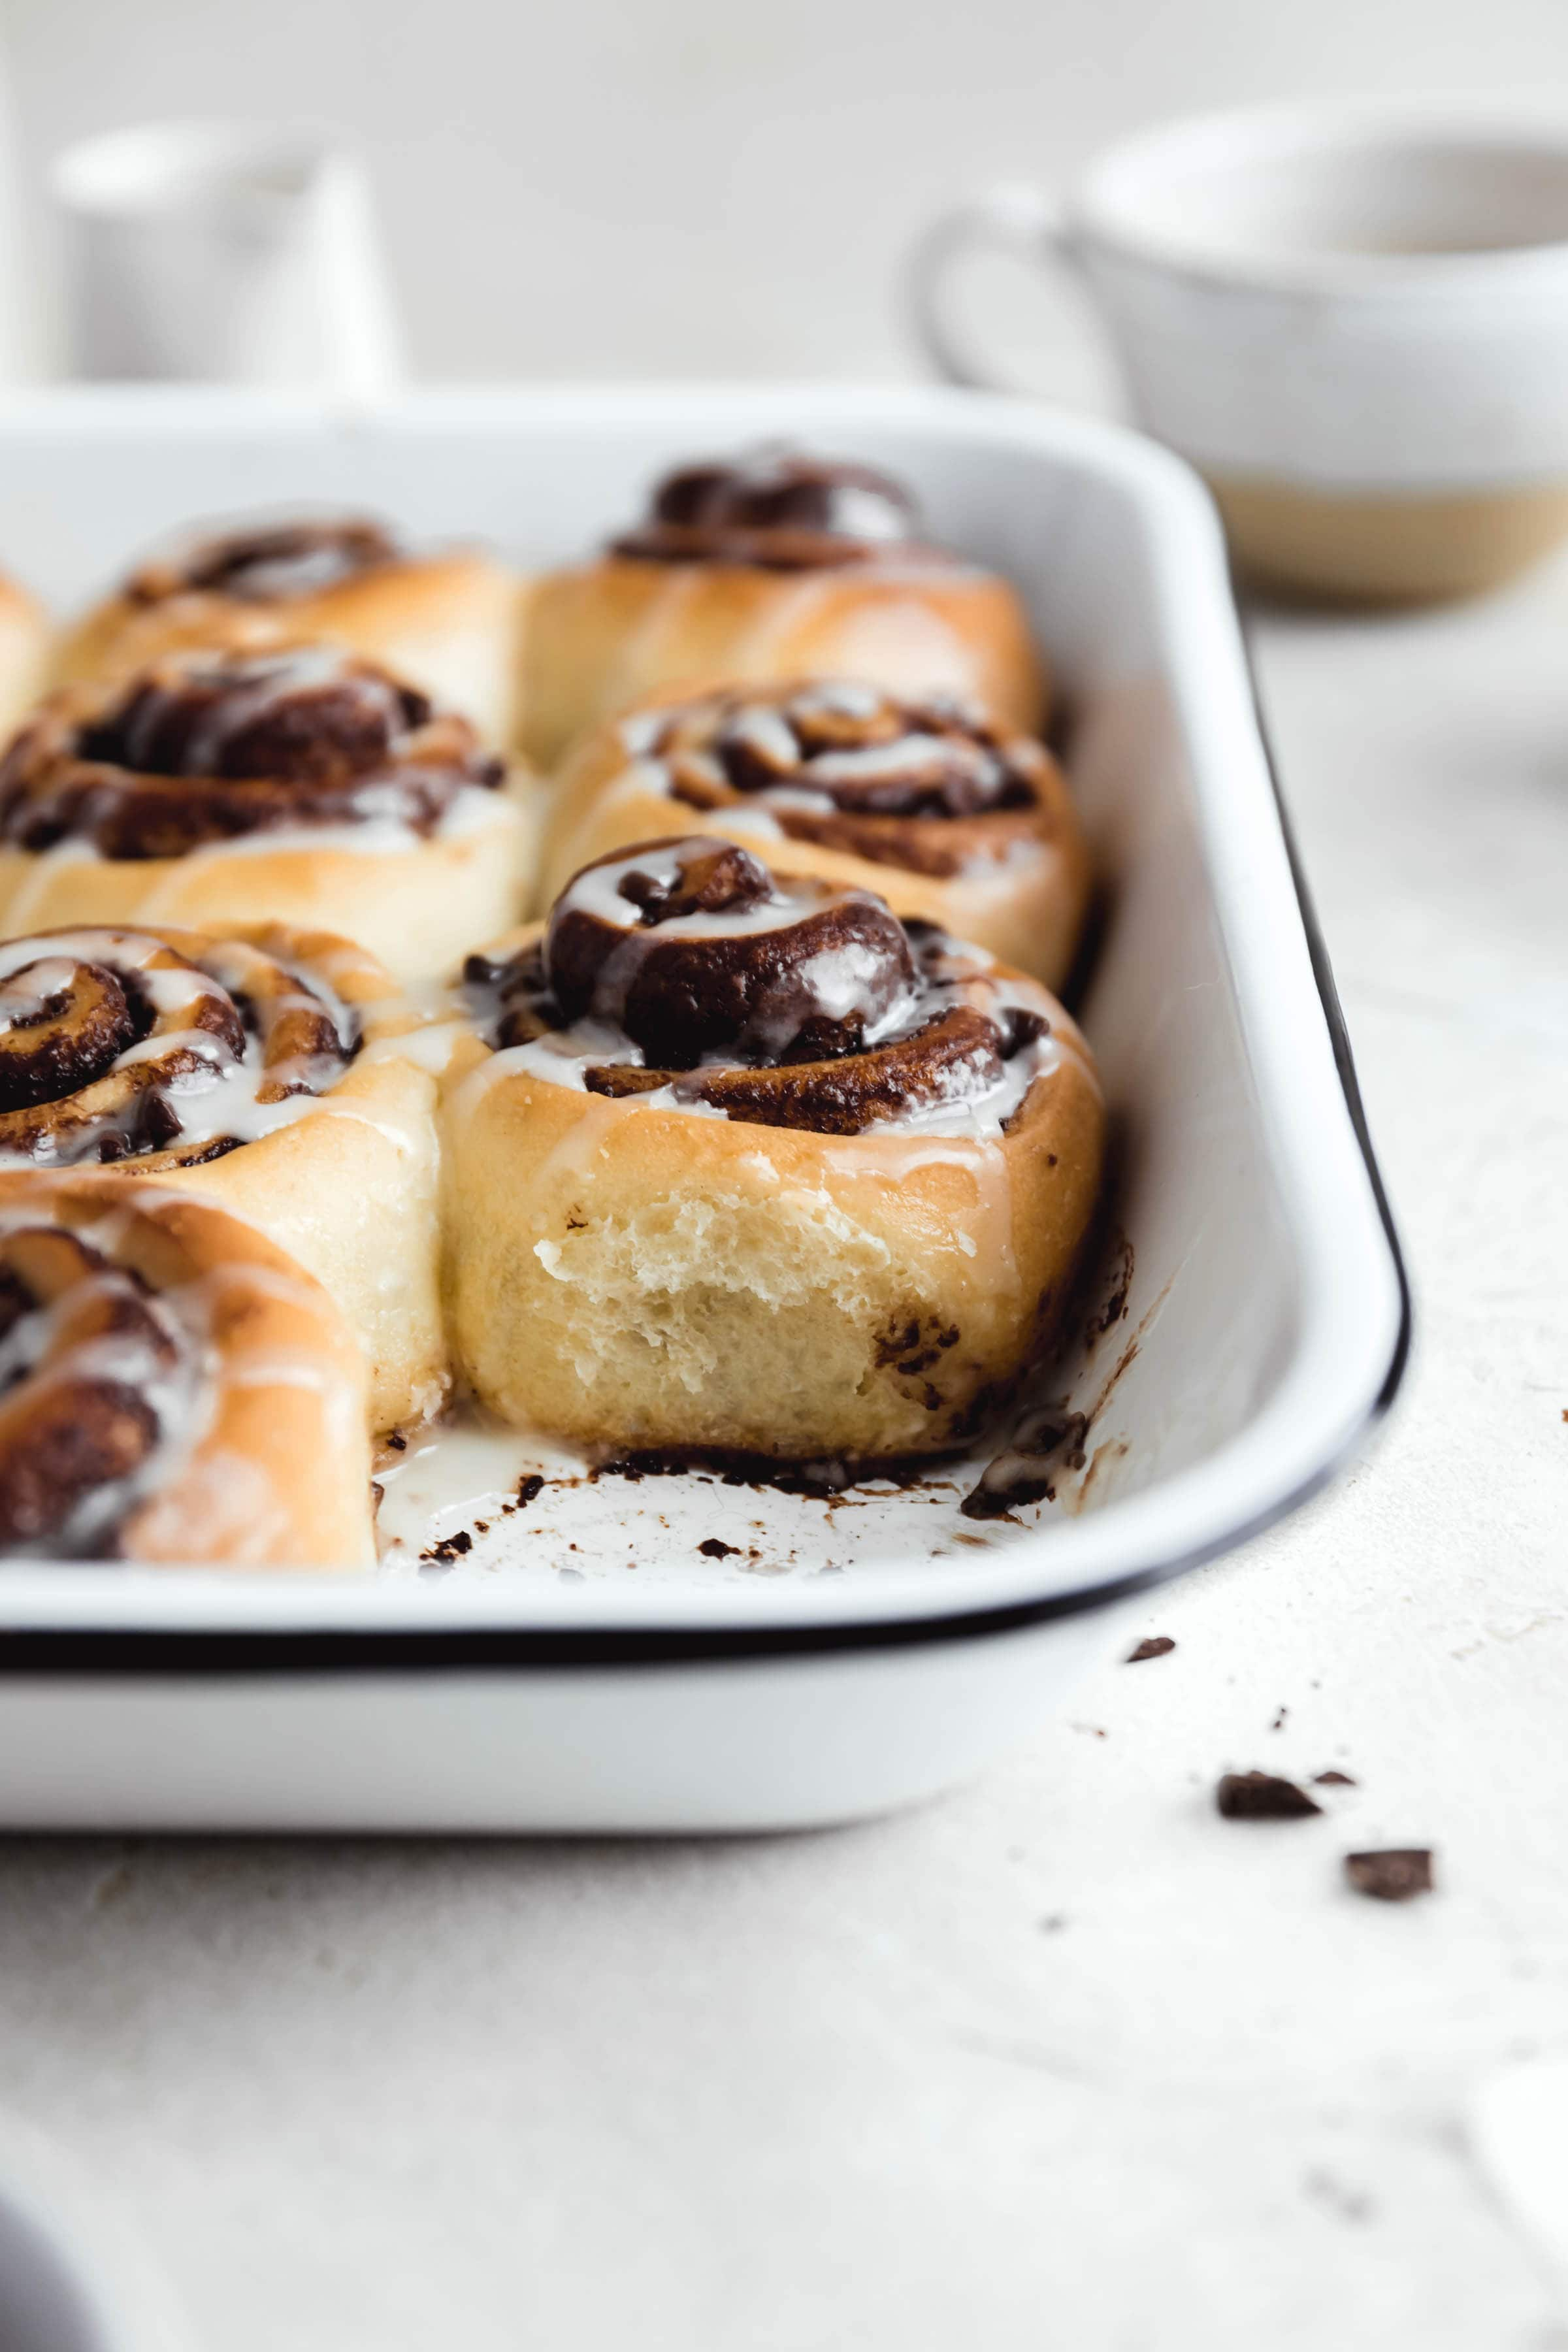 scrumptious pan of chocolate cinnamon rolls with one taken out